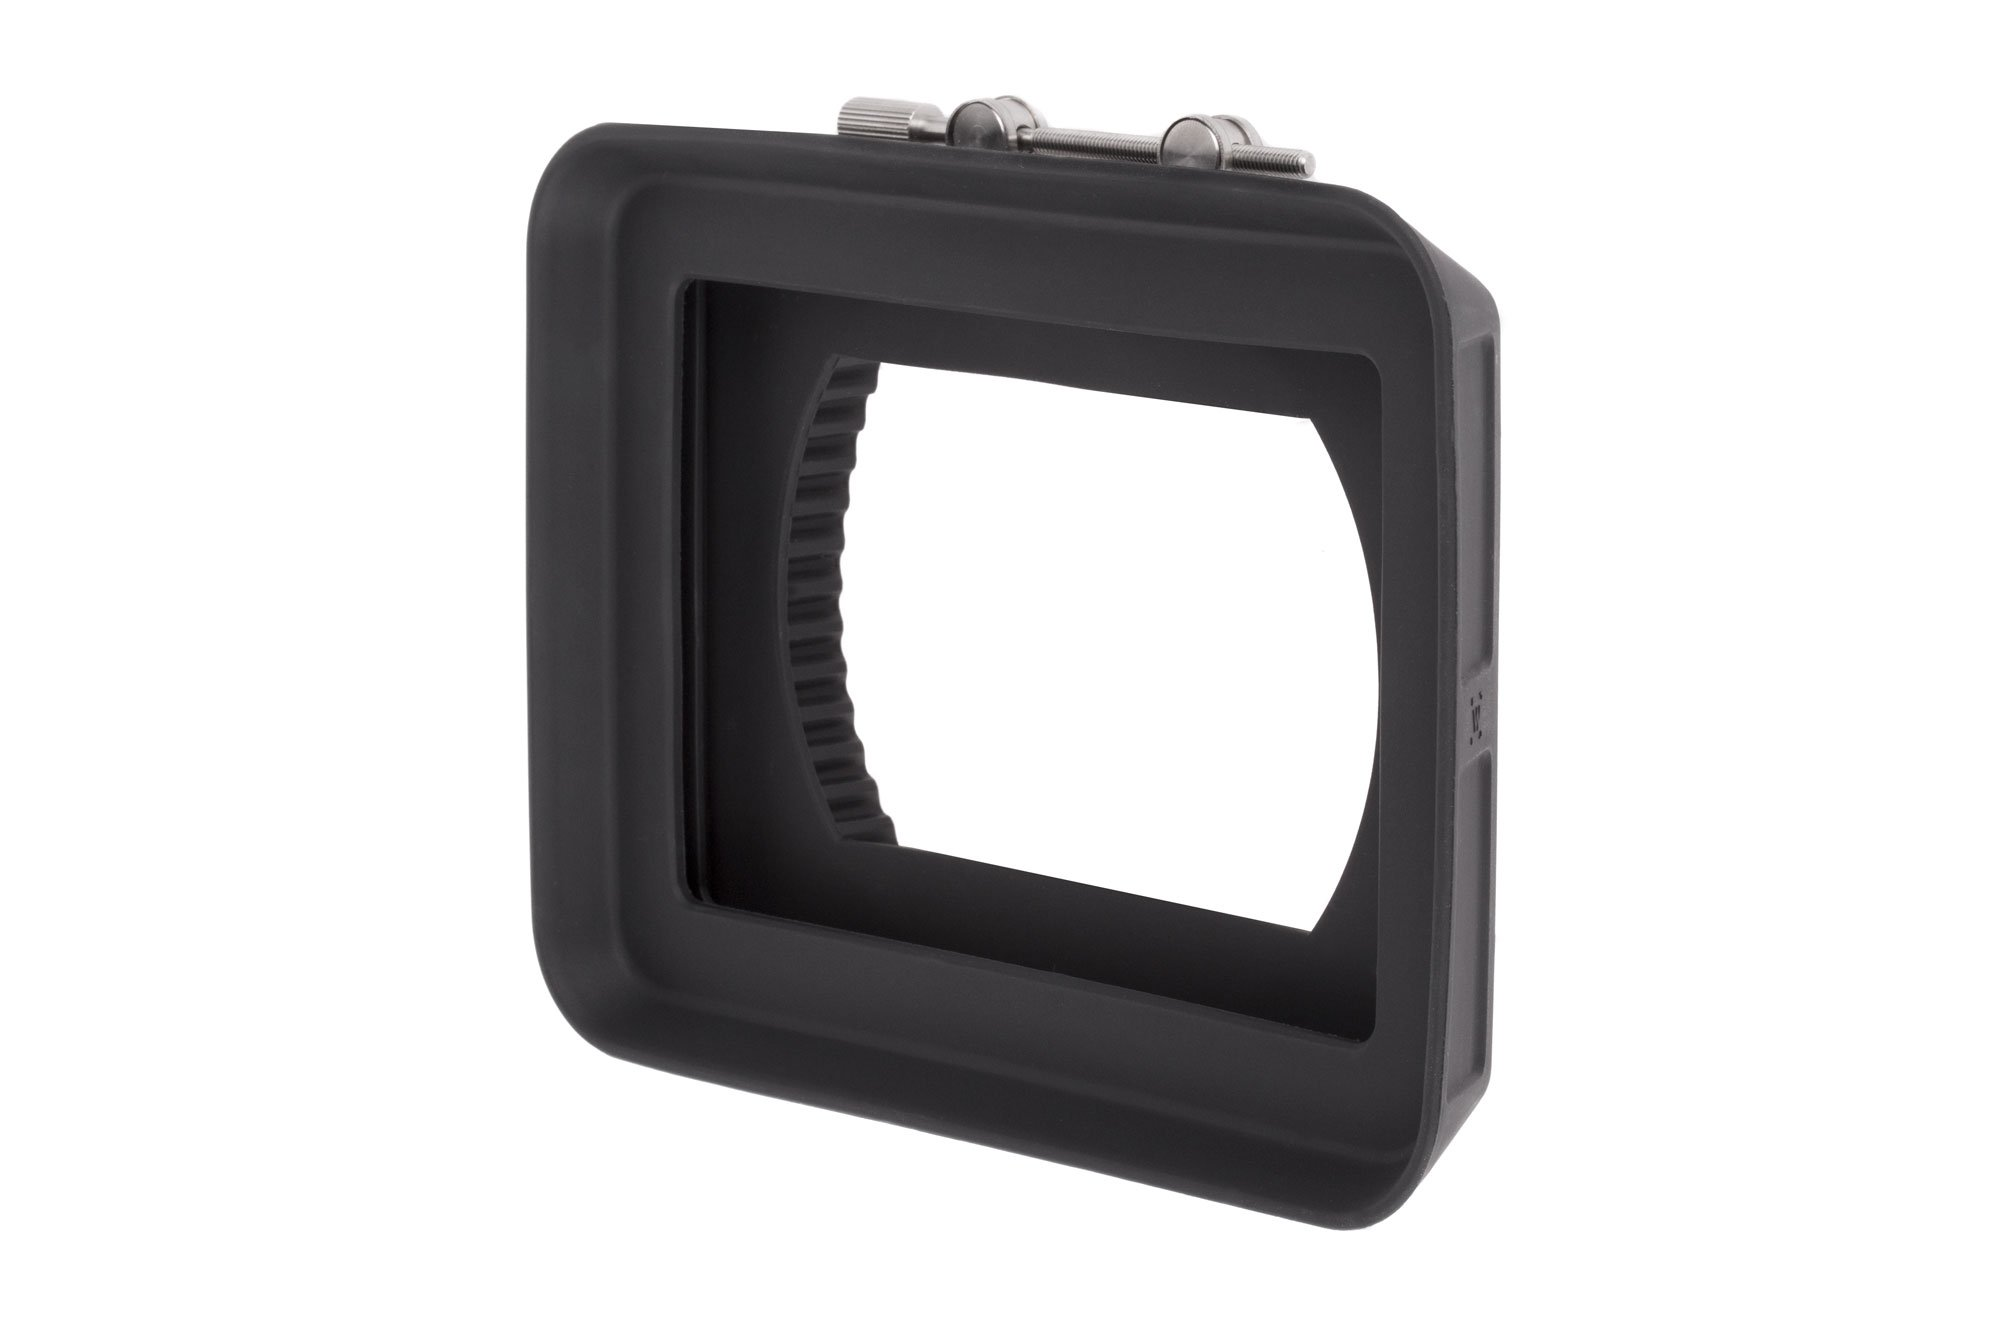 Wooden Camera -Zip Box Double 4x5.65 (110-115mm) by Wooden Camera (Image #2)